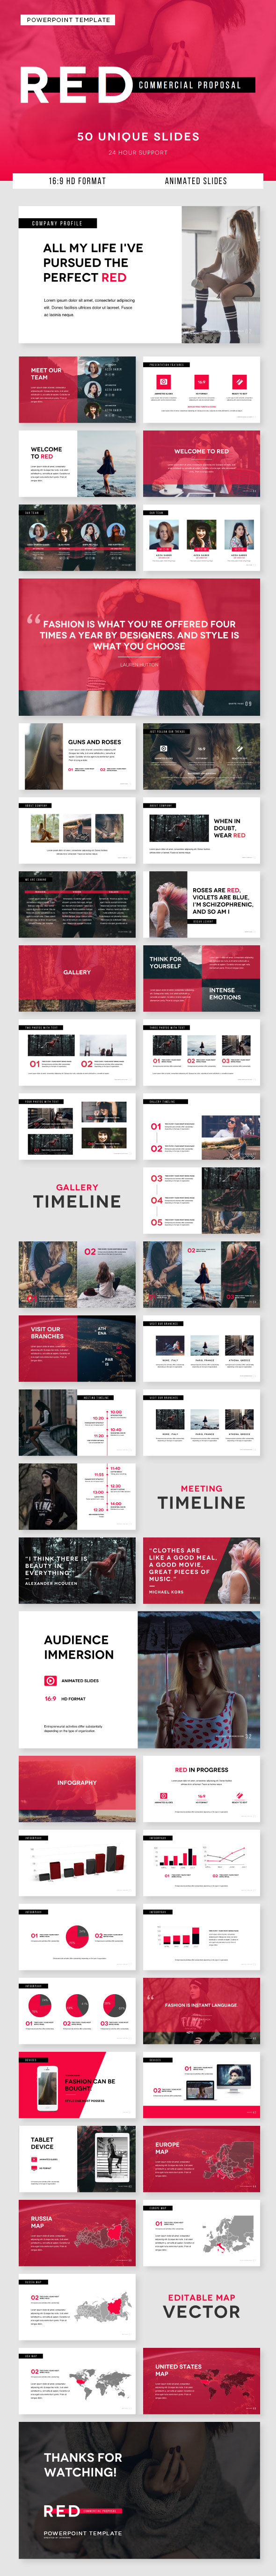 RED Commercial Proposal - PowerPoint Template